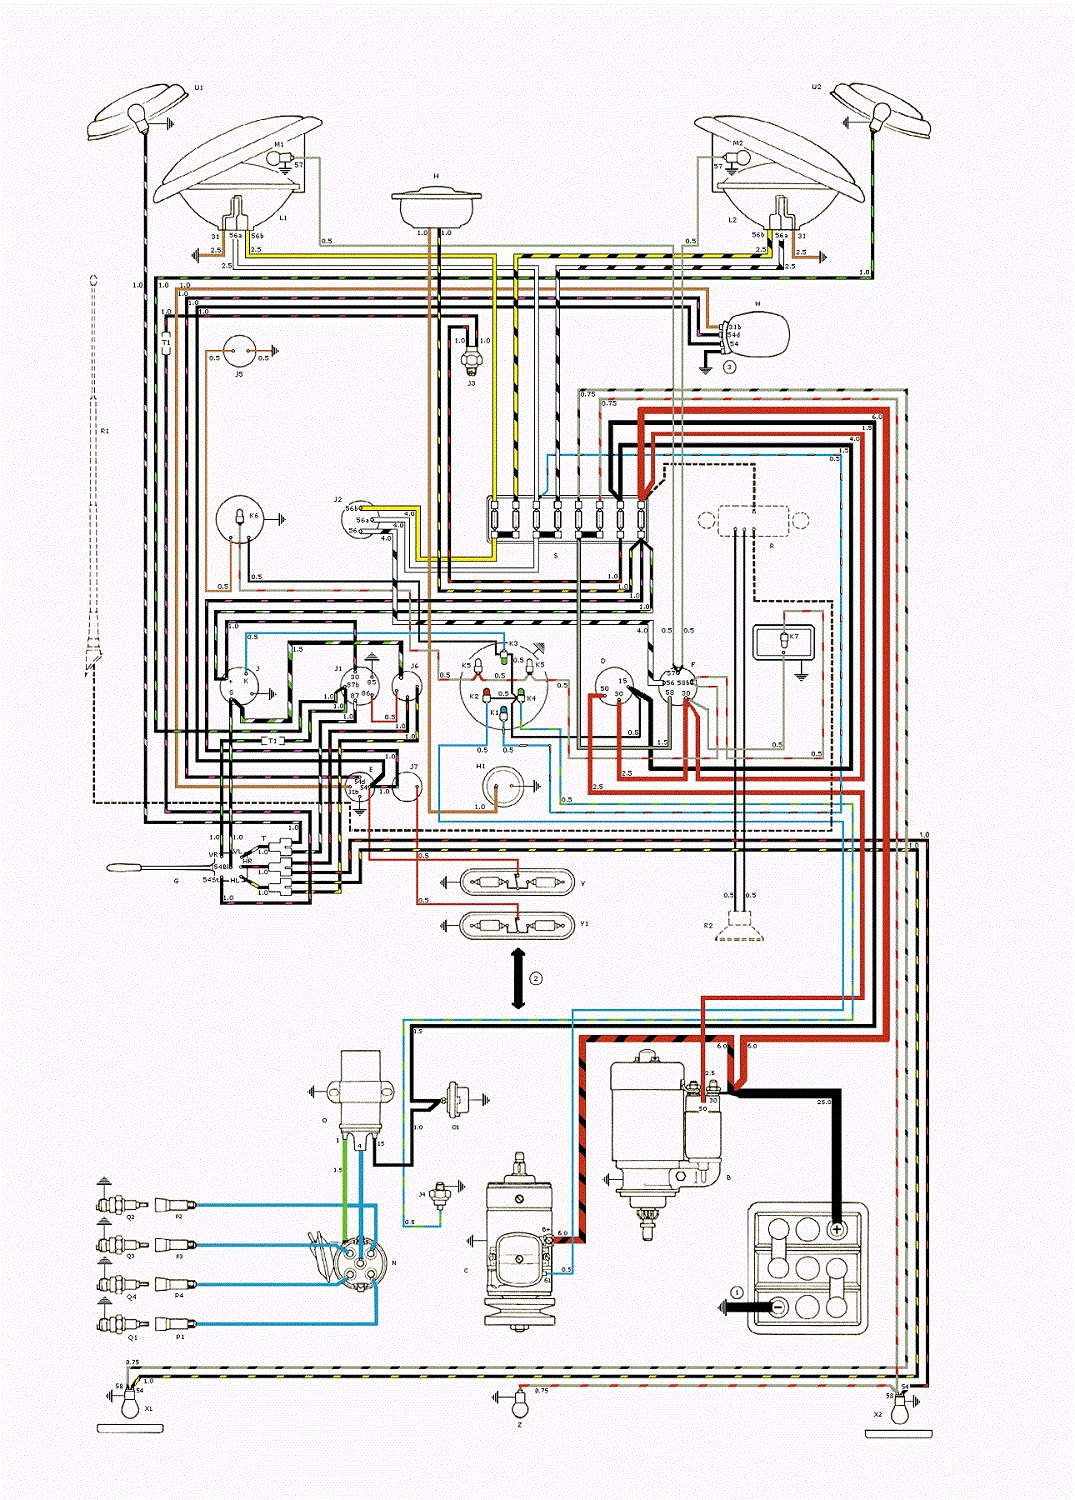 1979 Vw Fuse Diagram Wiring Services 1998 Volkswagen Passat Thesamba Com Type 2 Diagrams Rh 2007 1999 Beetle